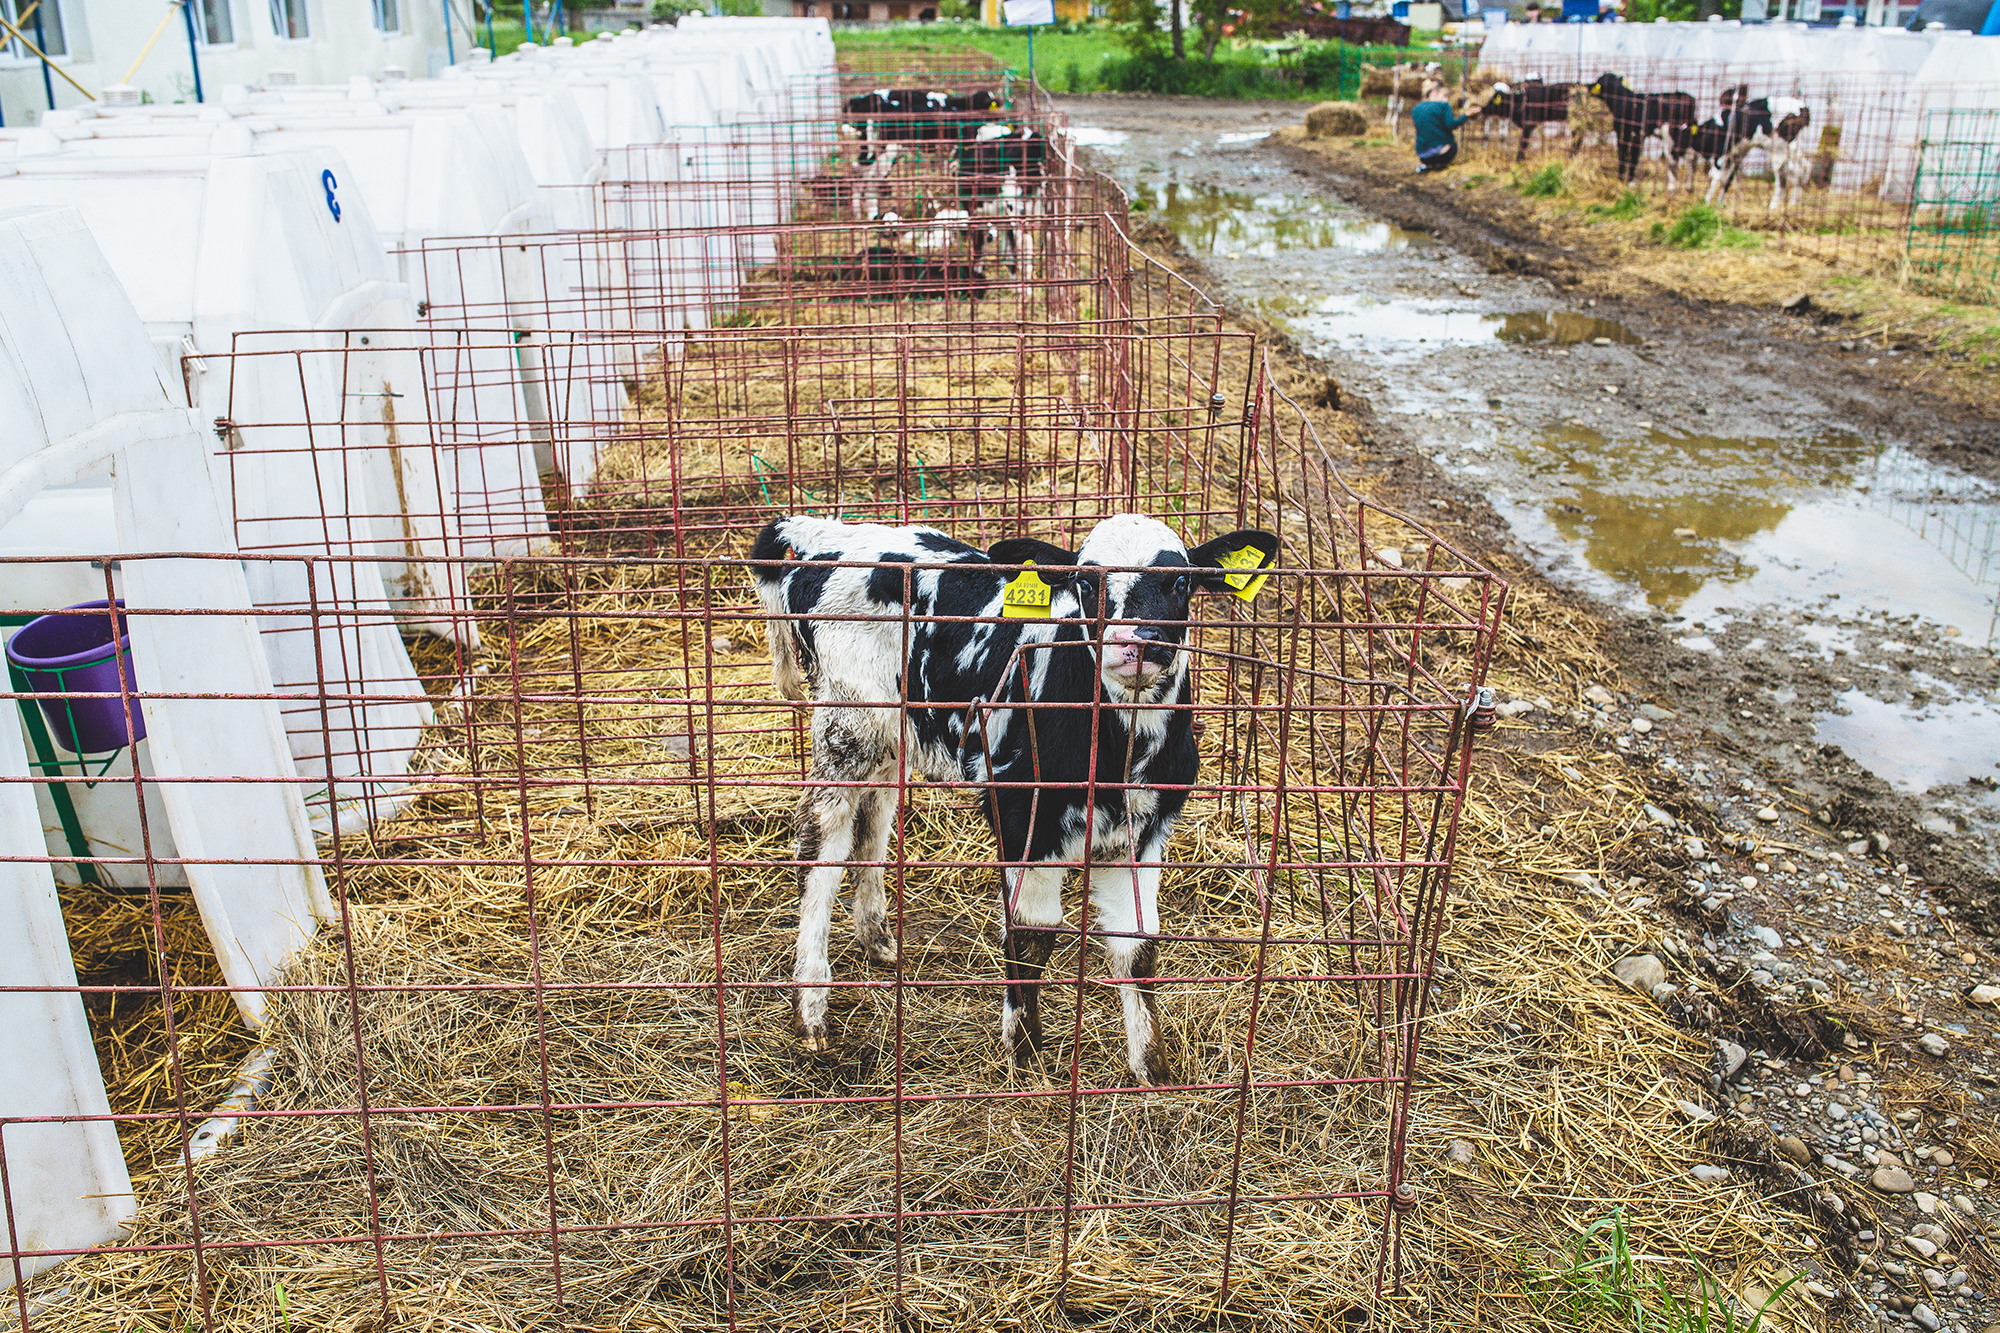 DAIRY FARM – UKRAINE 2019